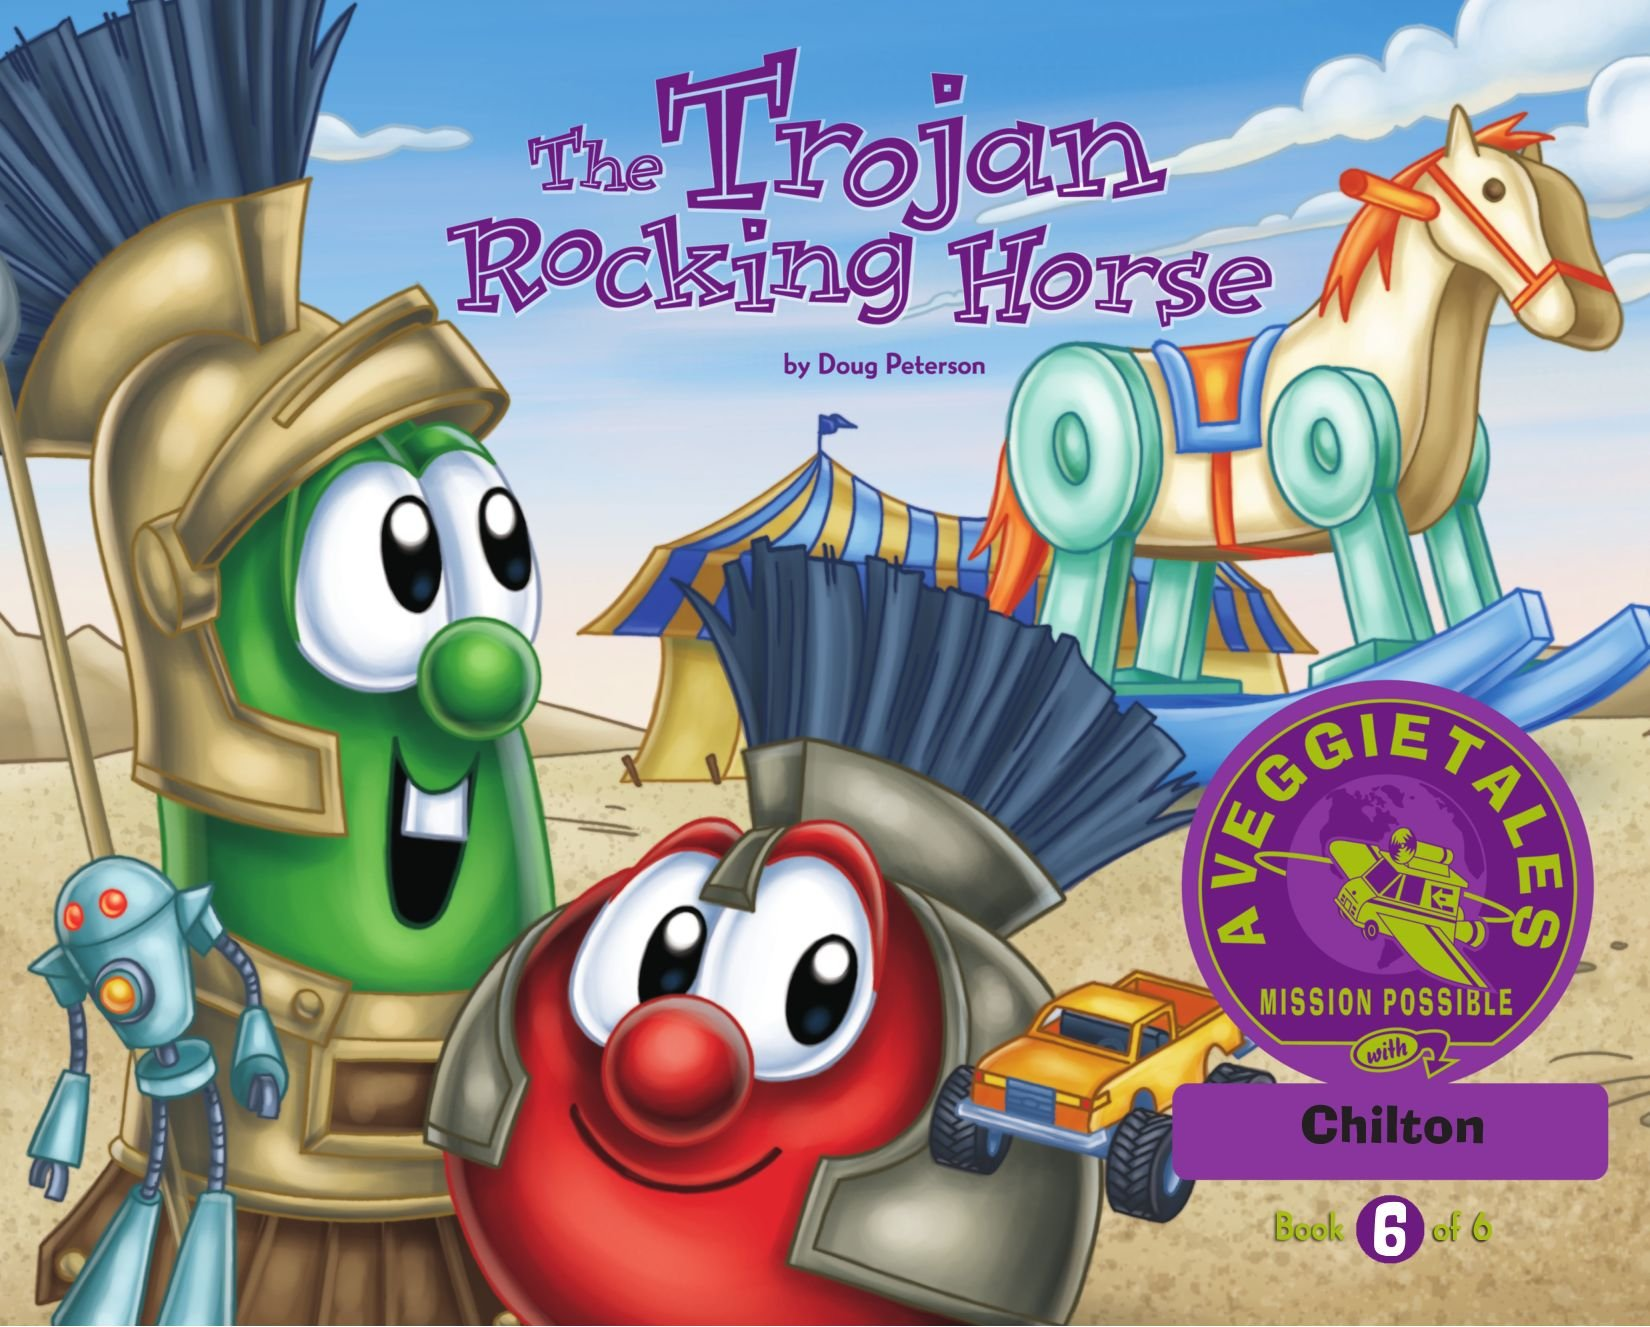 The Trojan Rocking Horse - VeggieTales Mission Possible Adventure Series #6: Personalized for Chilton (Girl) ebook